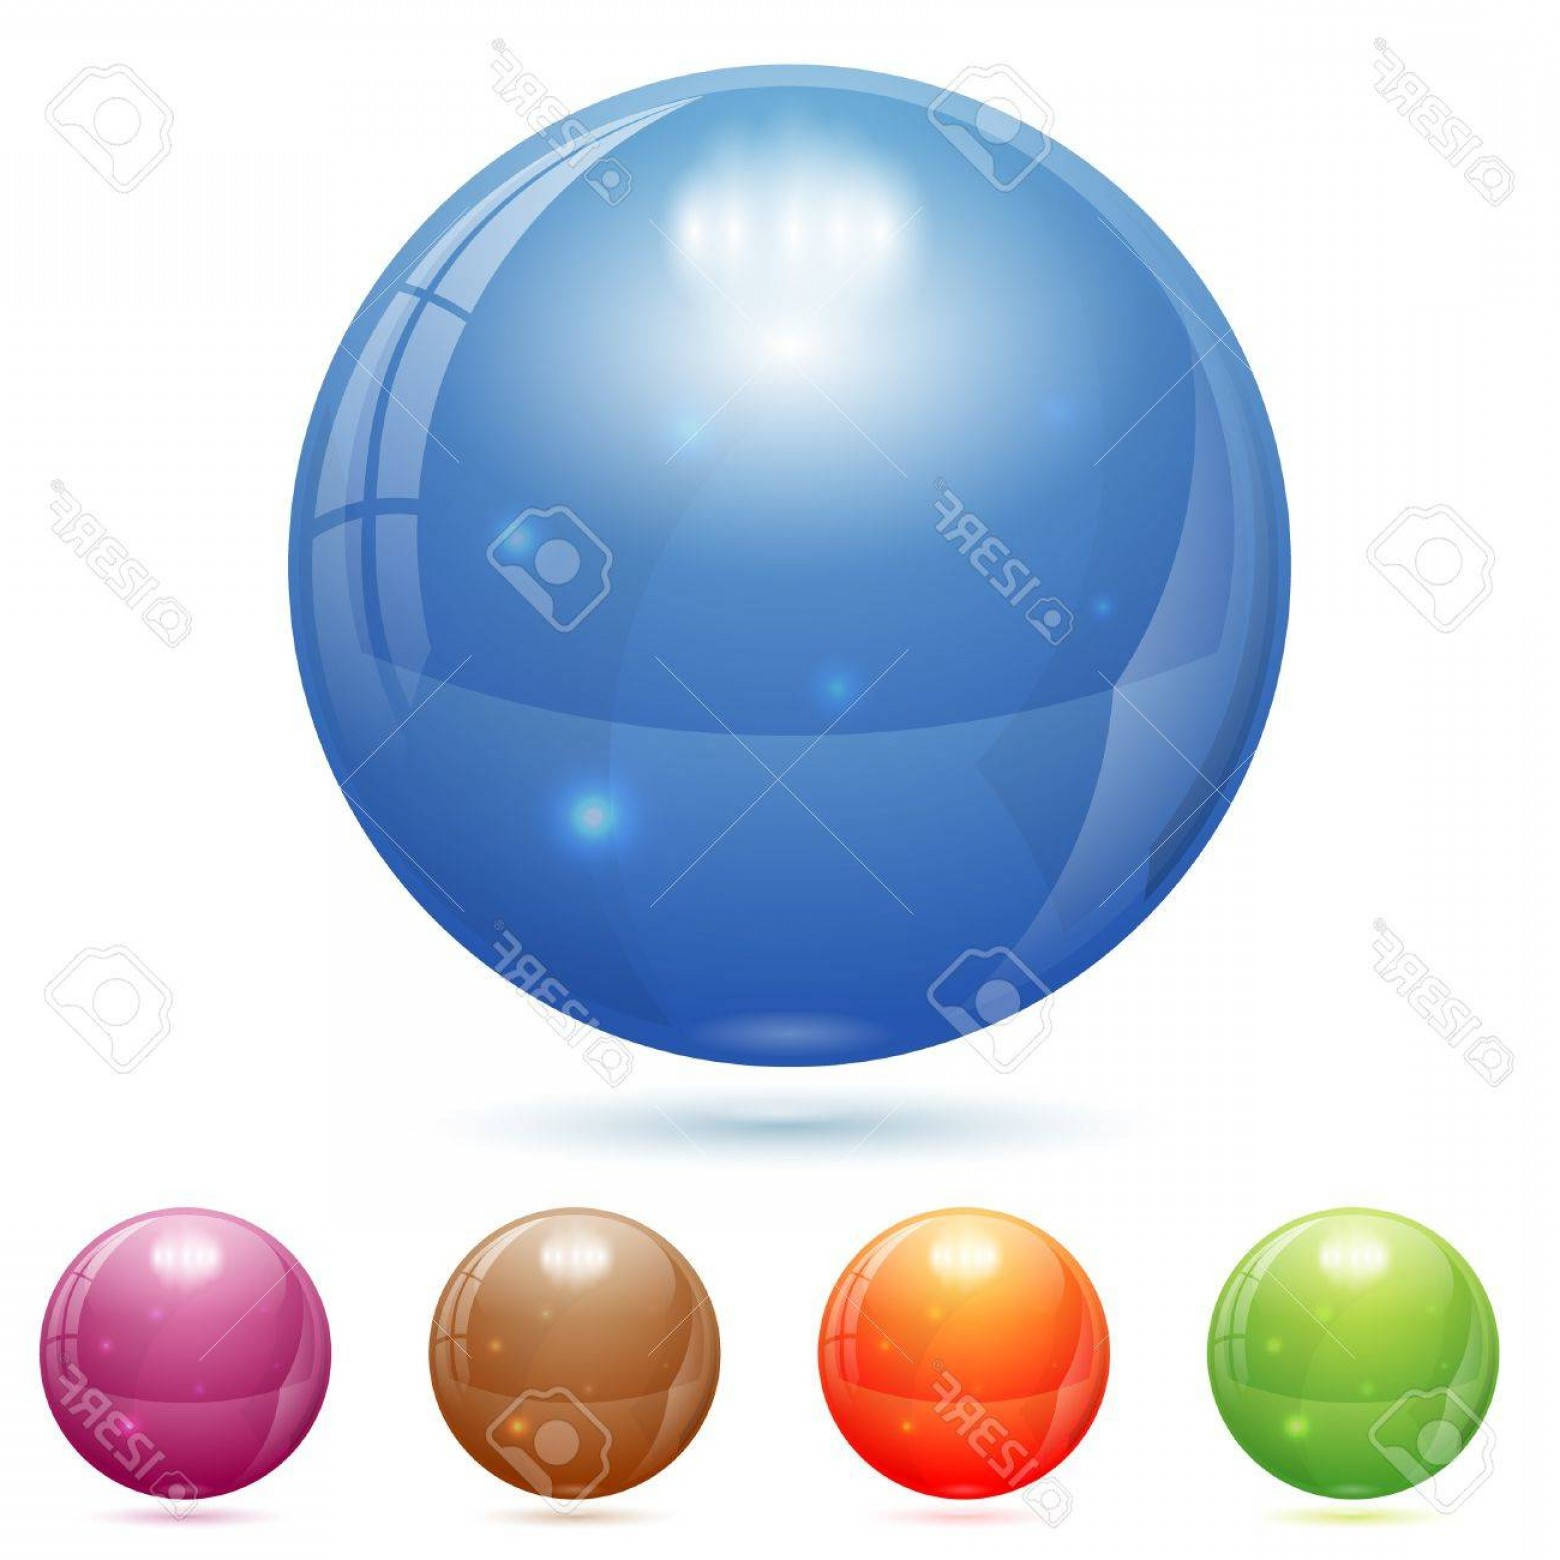 Vector Sphere Marble: Photod Glass Marble Ball In Different Colors Isolated On White Vector